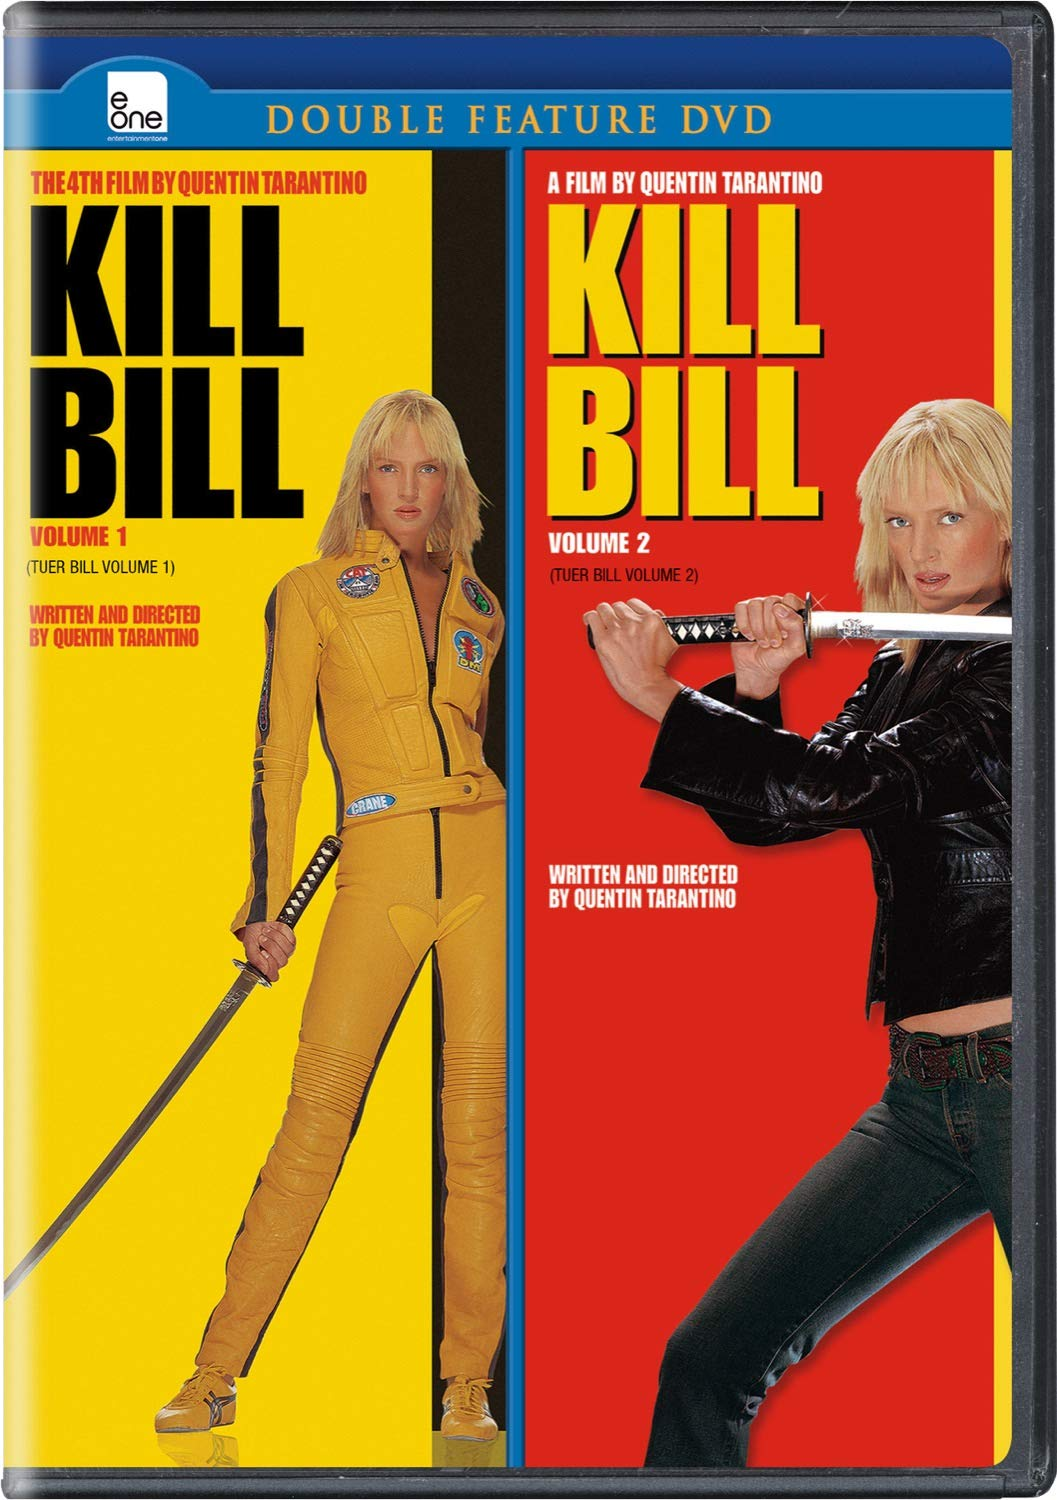 Amazon.com: Kill Bill - Volume 1 And 2 (Double Feature): Movies & TV